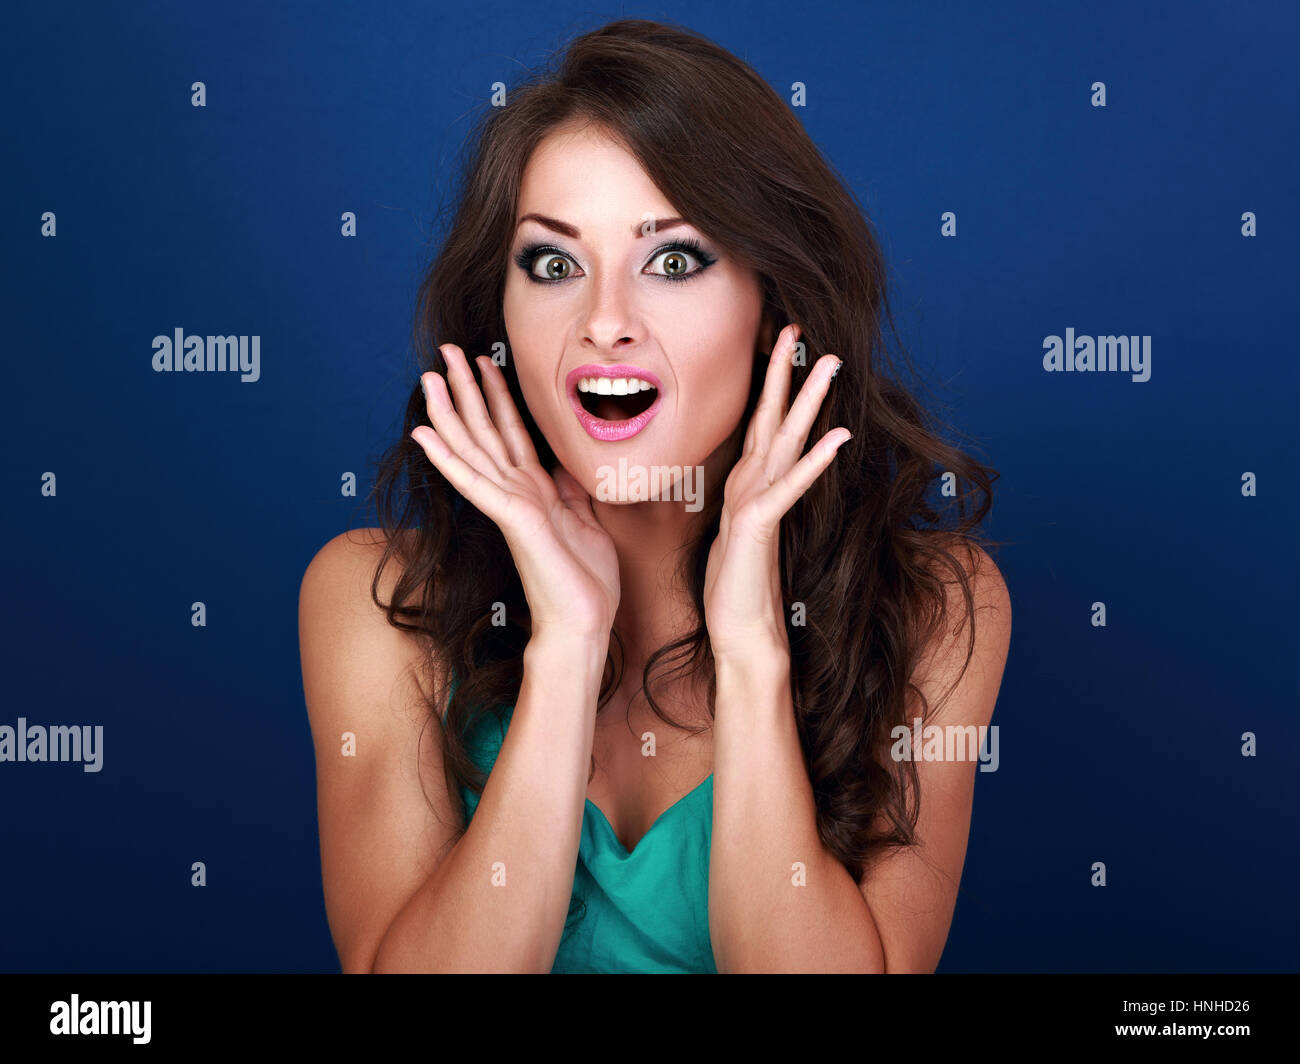 Surprised Shock Makeup Woman With Opened Mouth And Big Eyes With